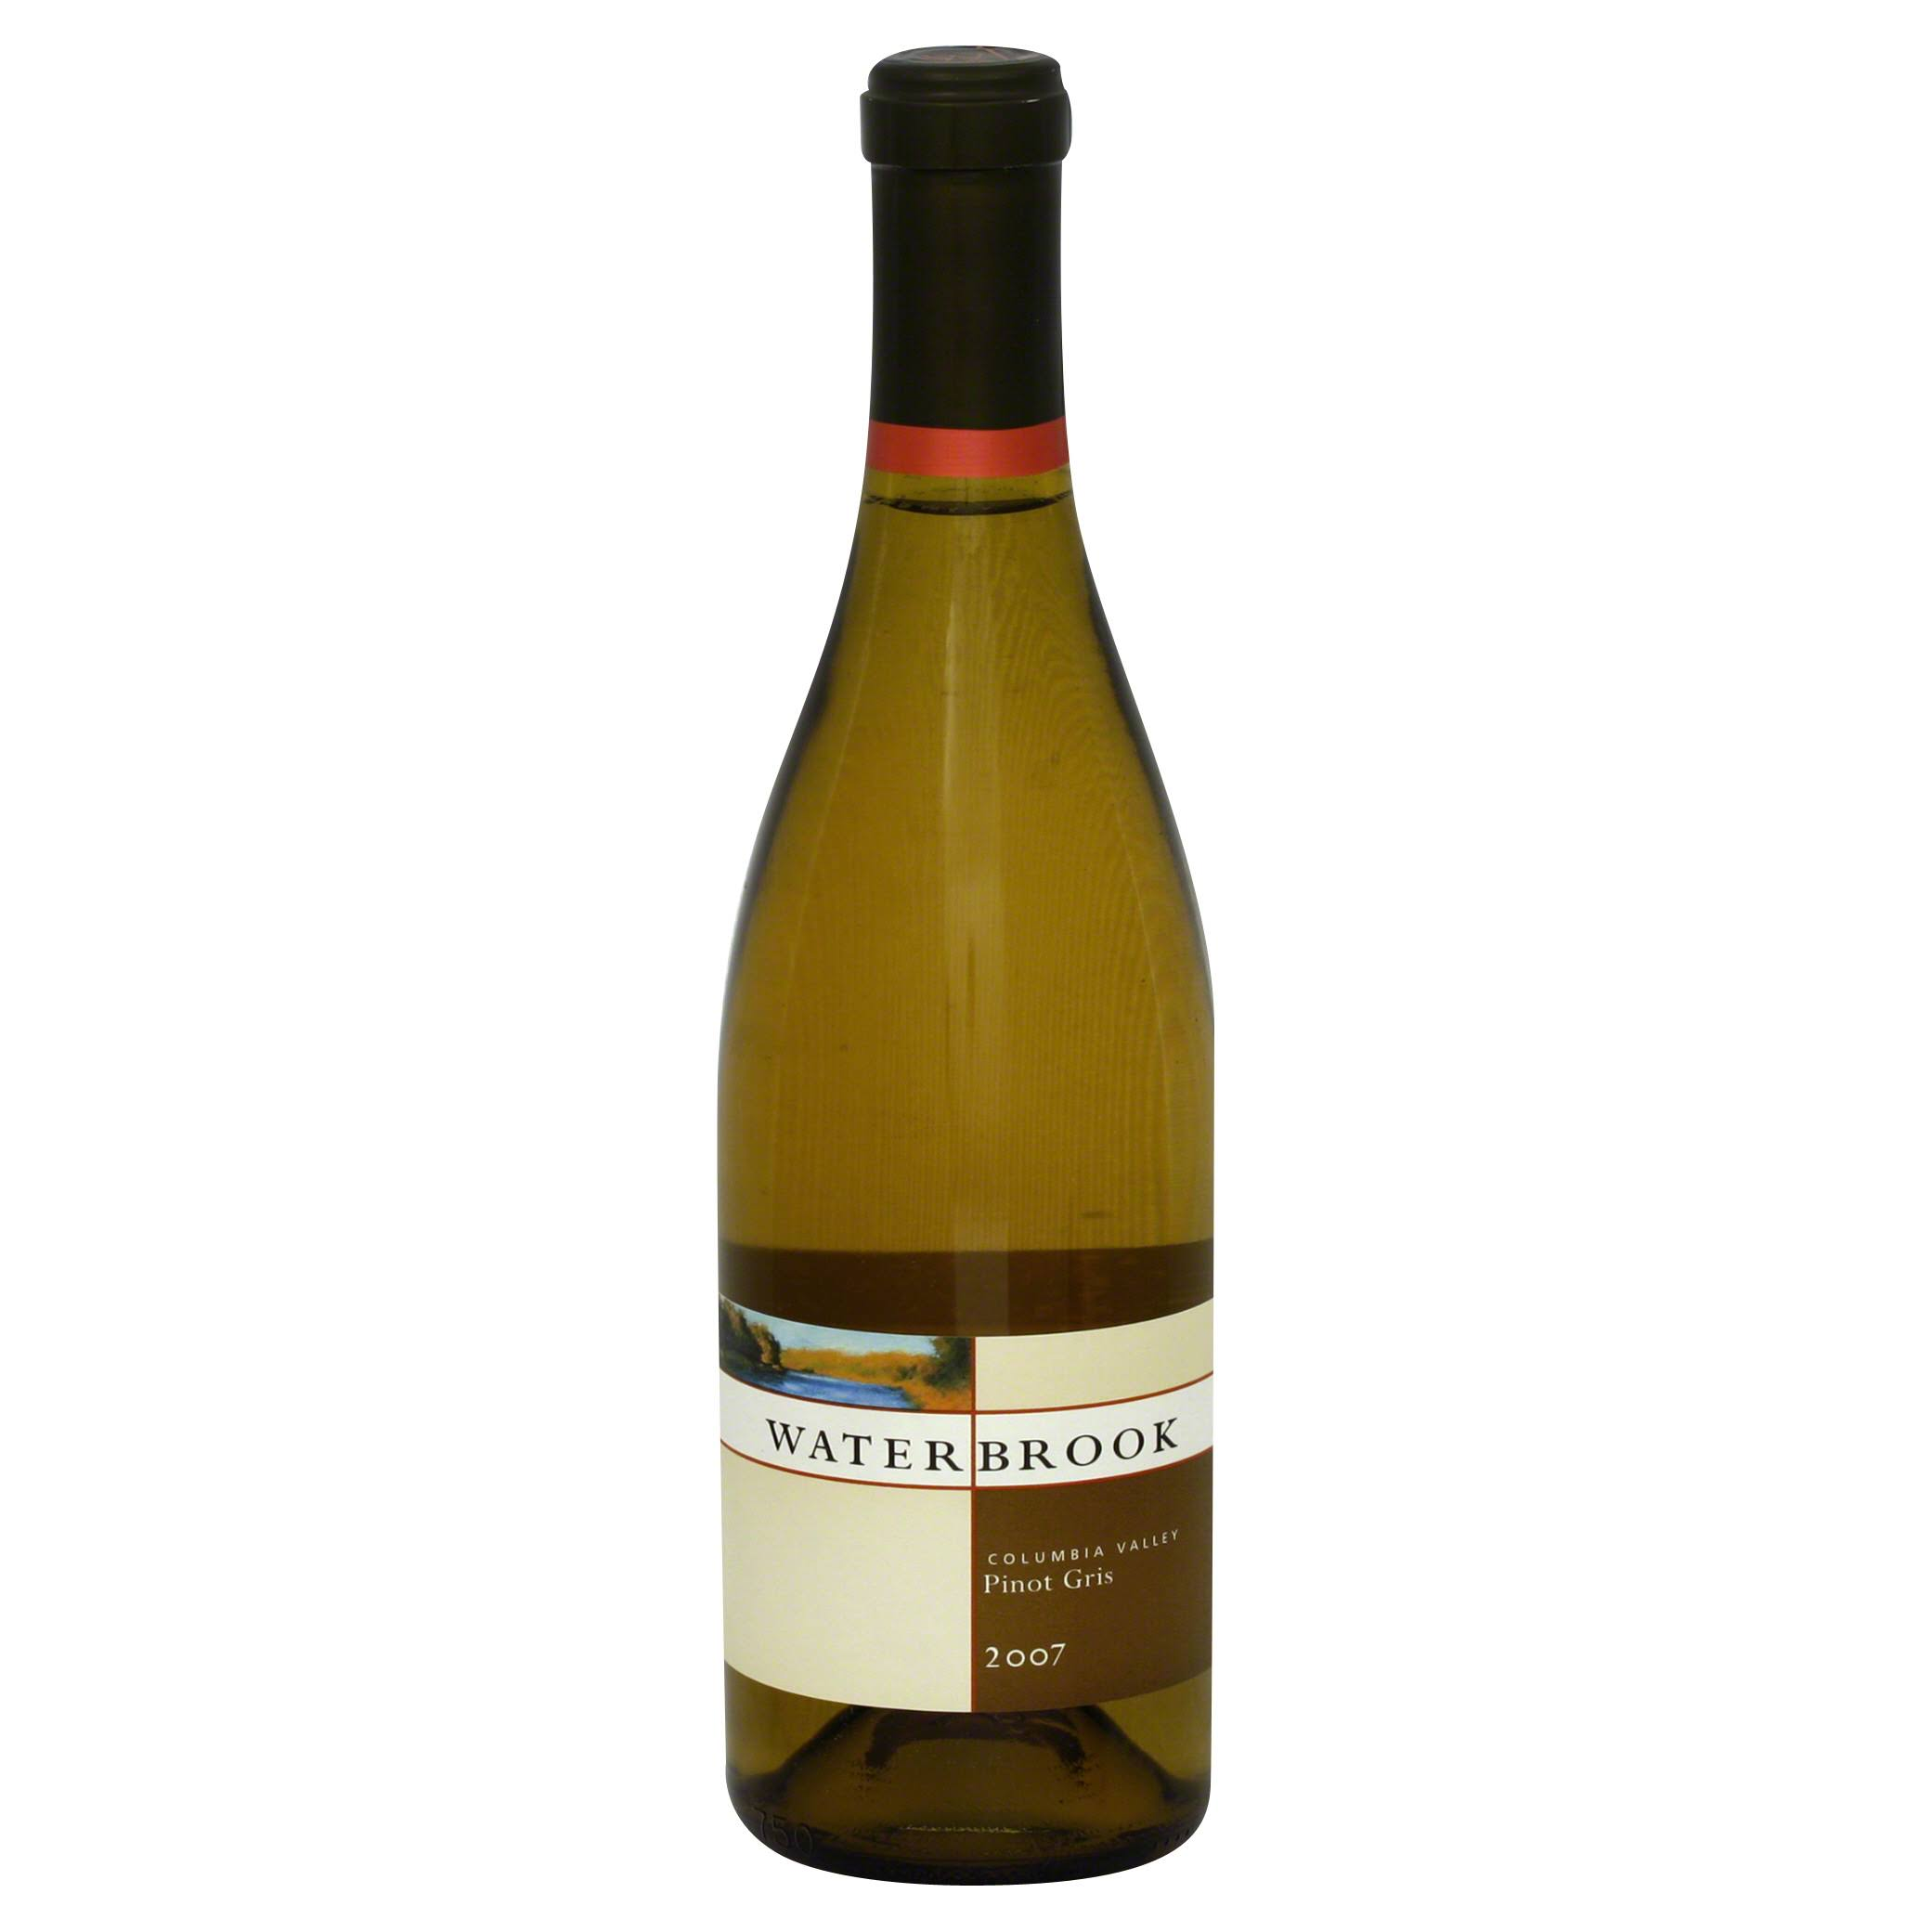 Waterbrook Pinot Gris, Columbia Valley, 2007 - 750 ml